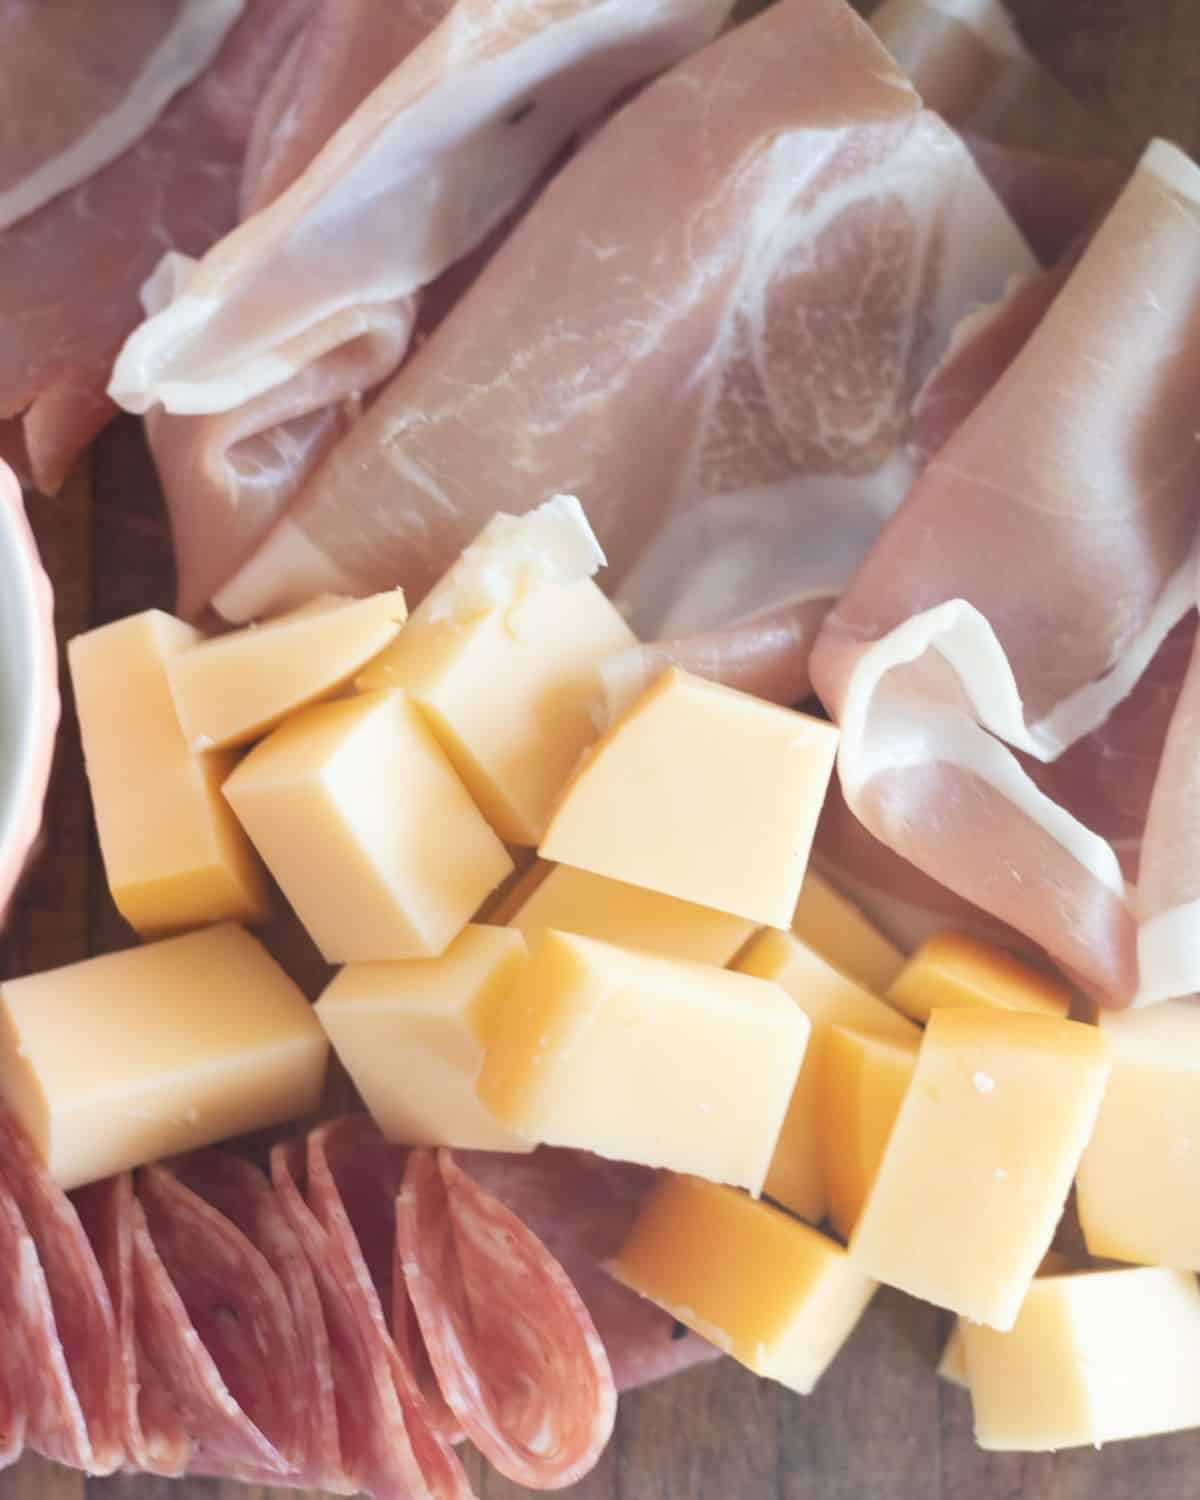 close up of cubed cheese with meats